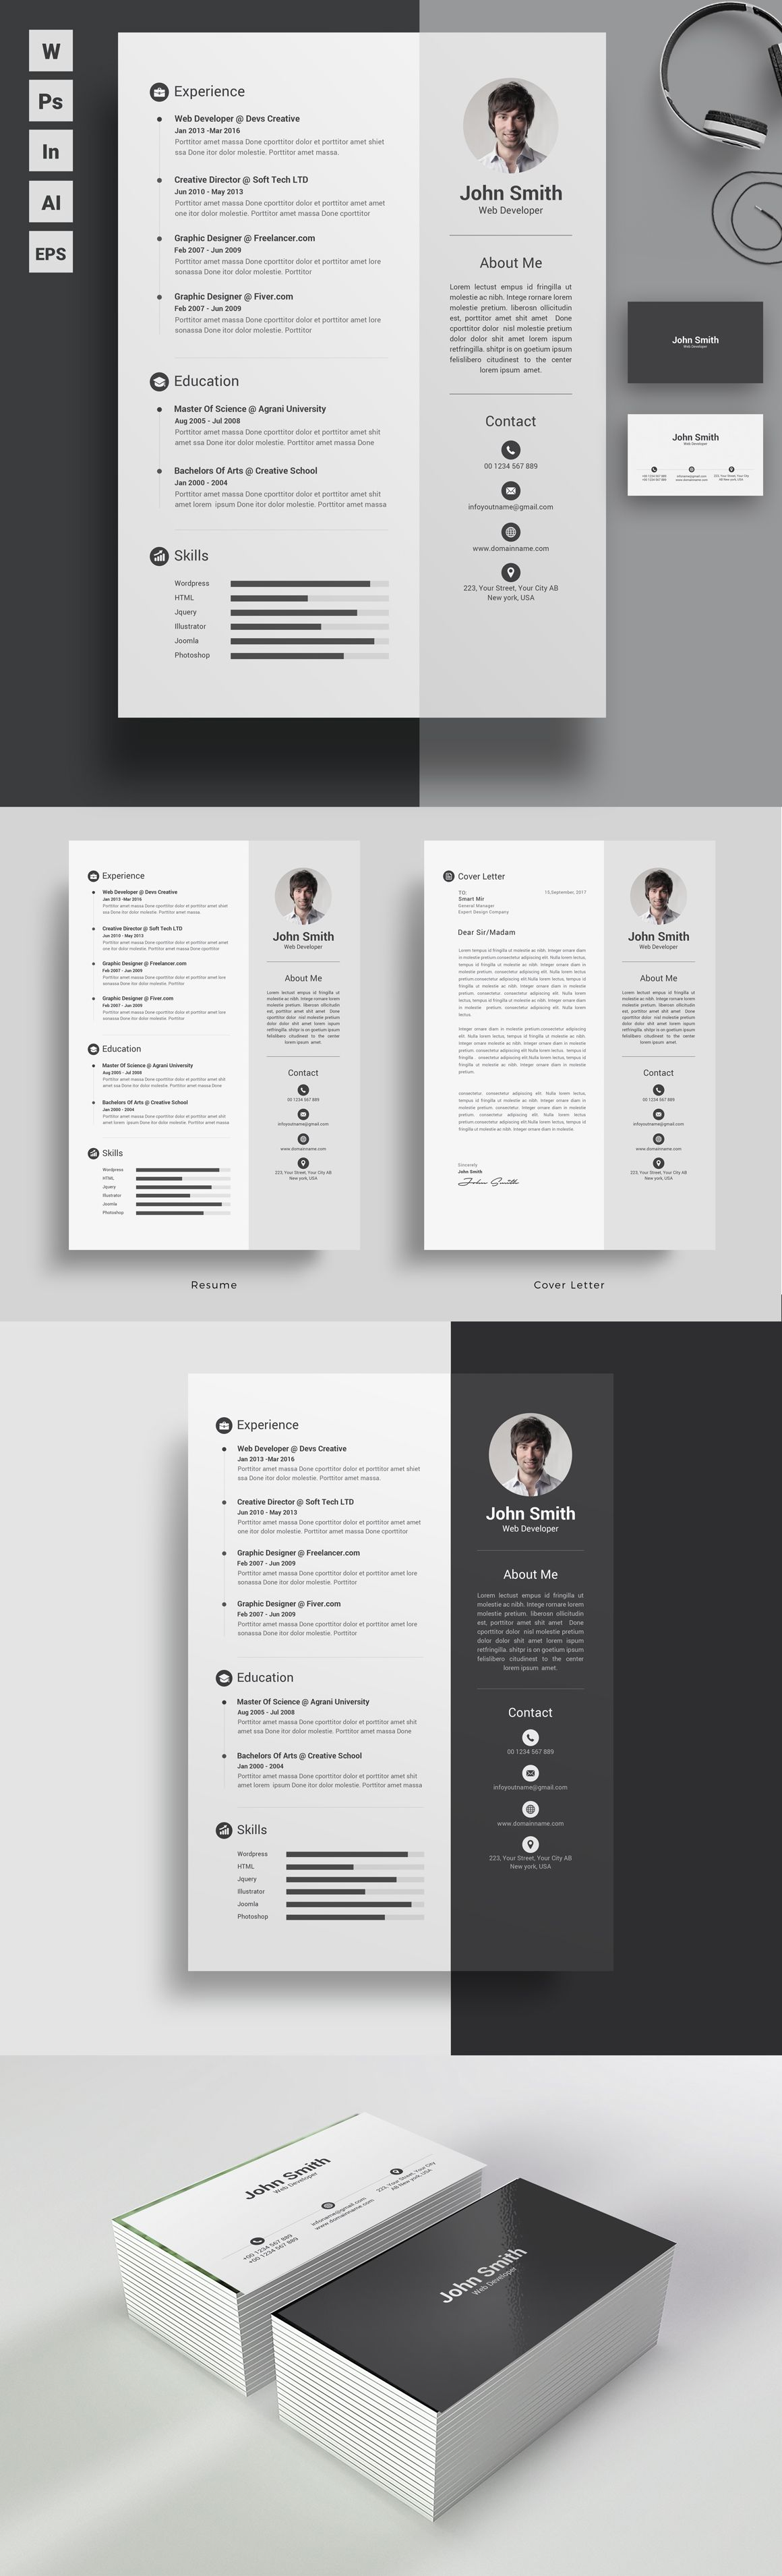 Clean But Lucrative Trendy Resume Design Template For Those Who